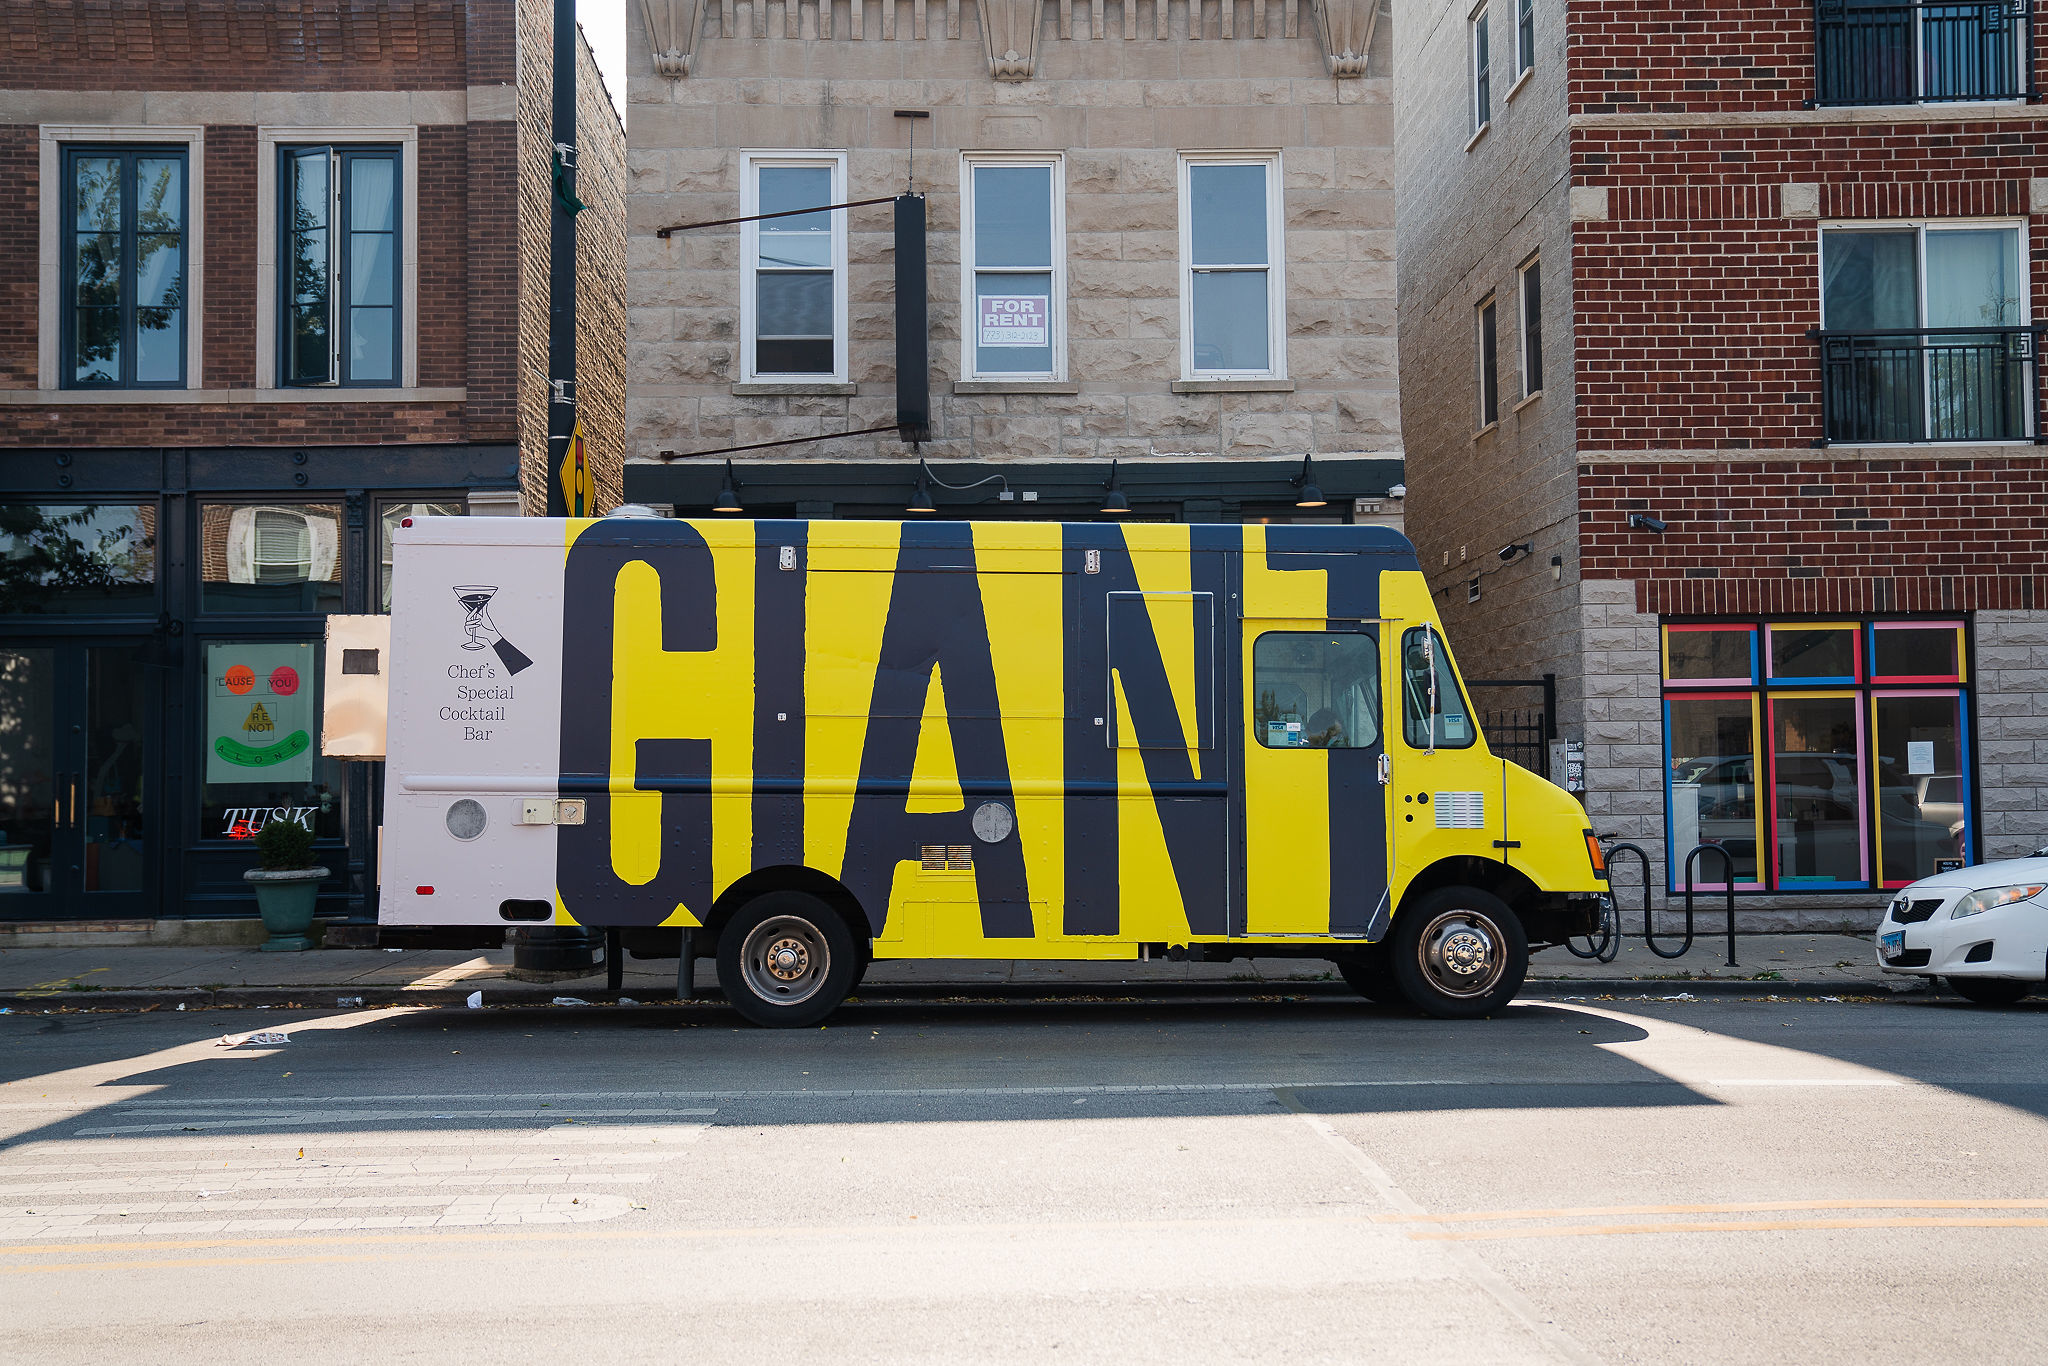 Celebrated Chicago restaurant Giant debuts a roving food truck